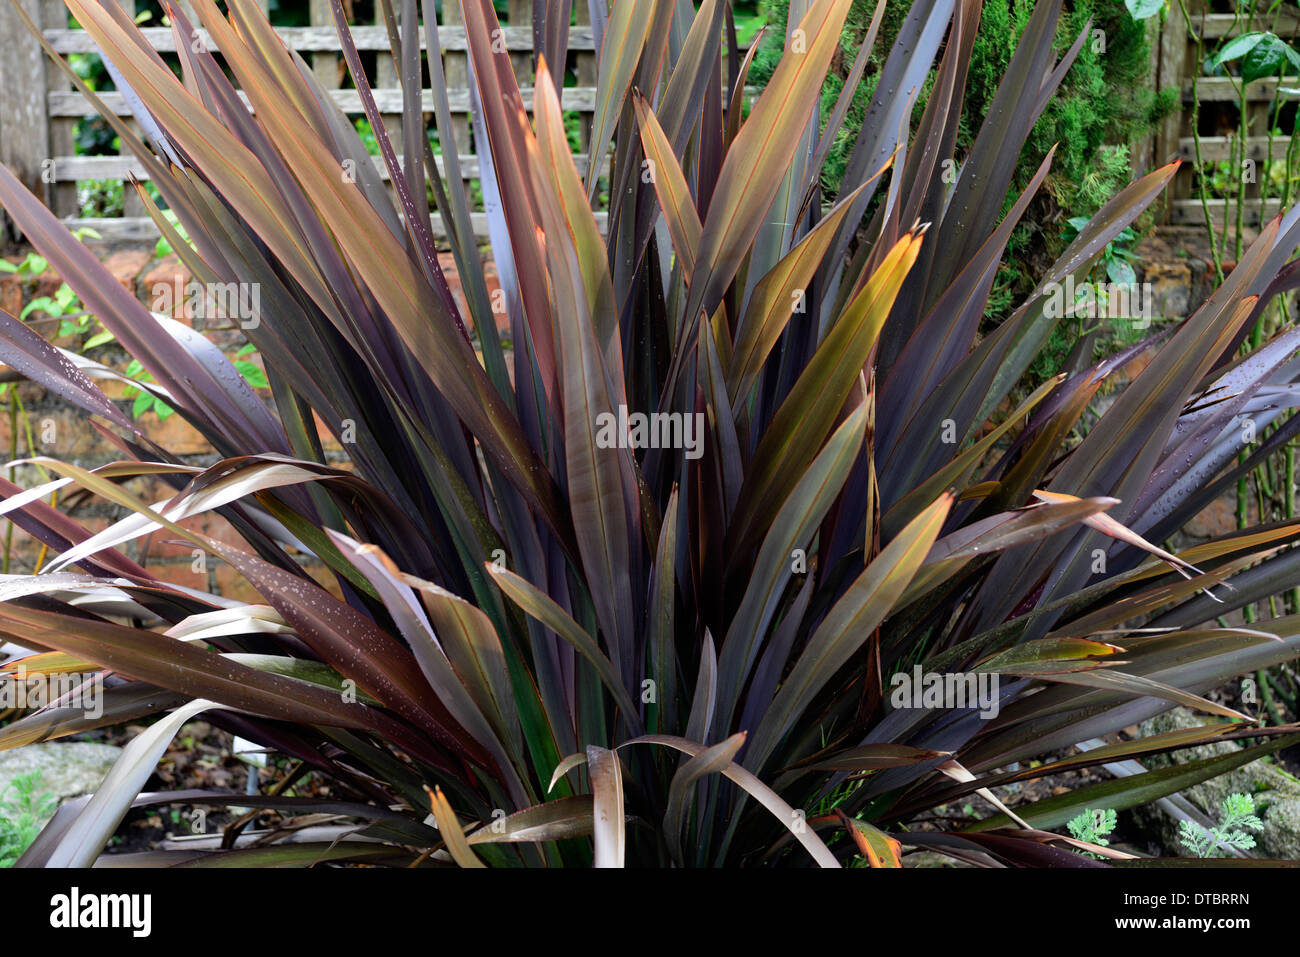 phormium black adder new zealand flax foliage leaves dark purple stock photo royalty free image. Black Bedroom Furniture Sets. Home Design Ideas